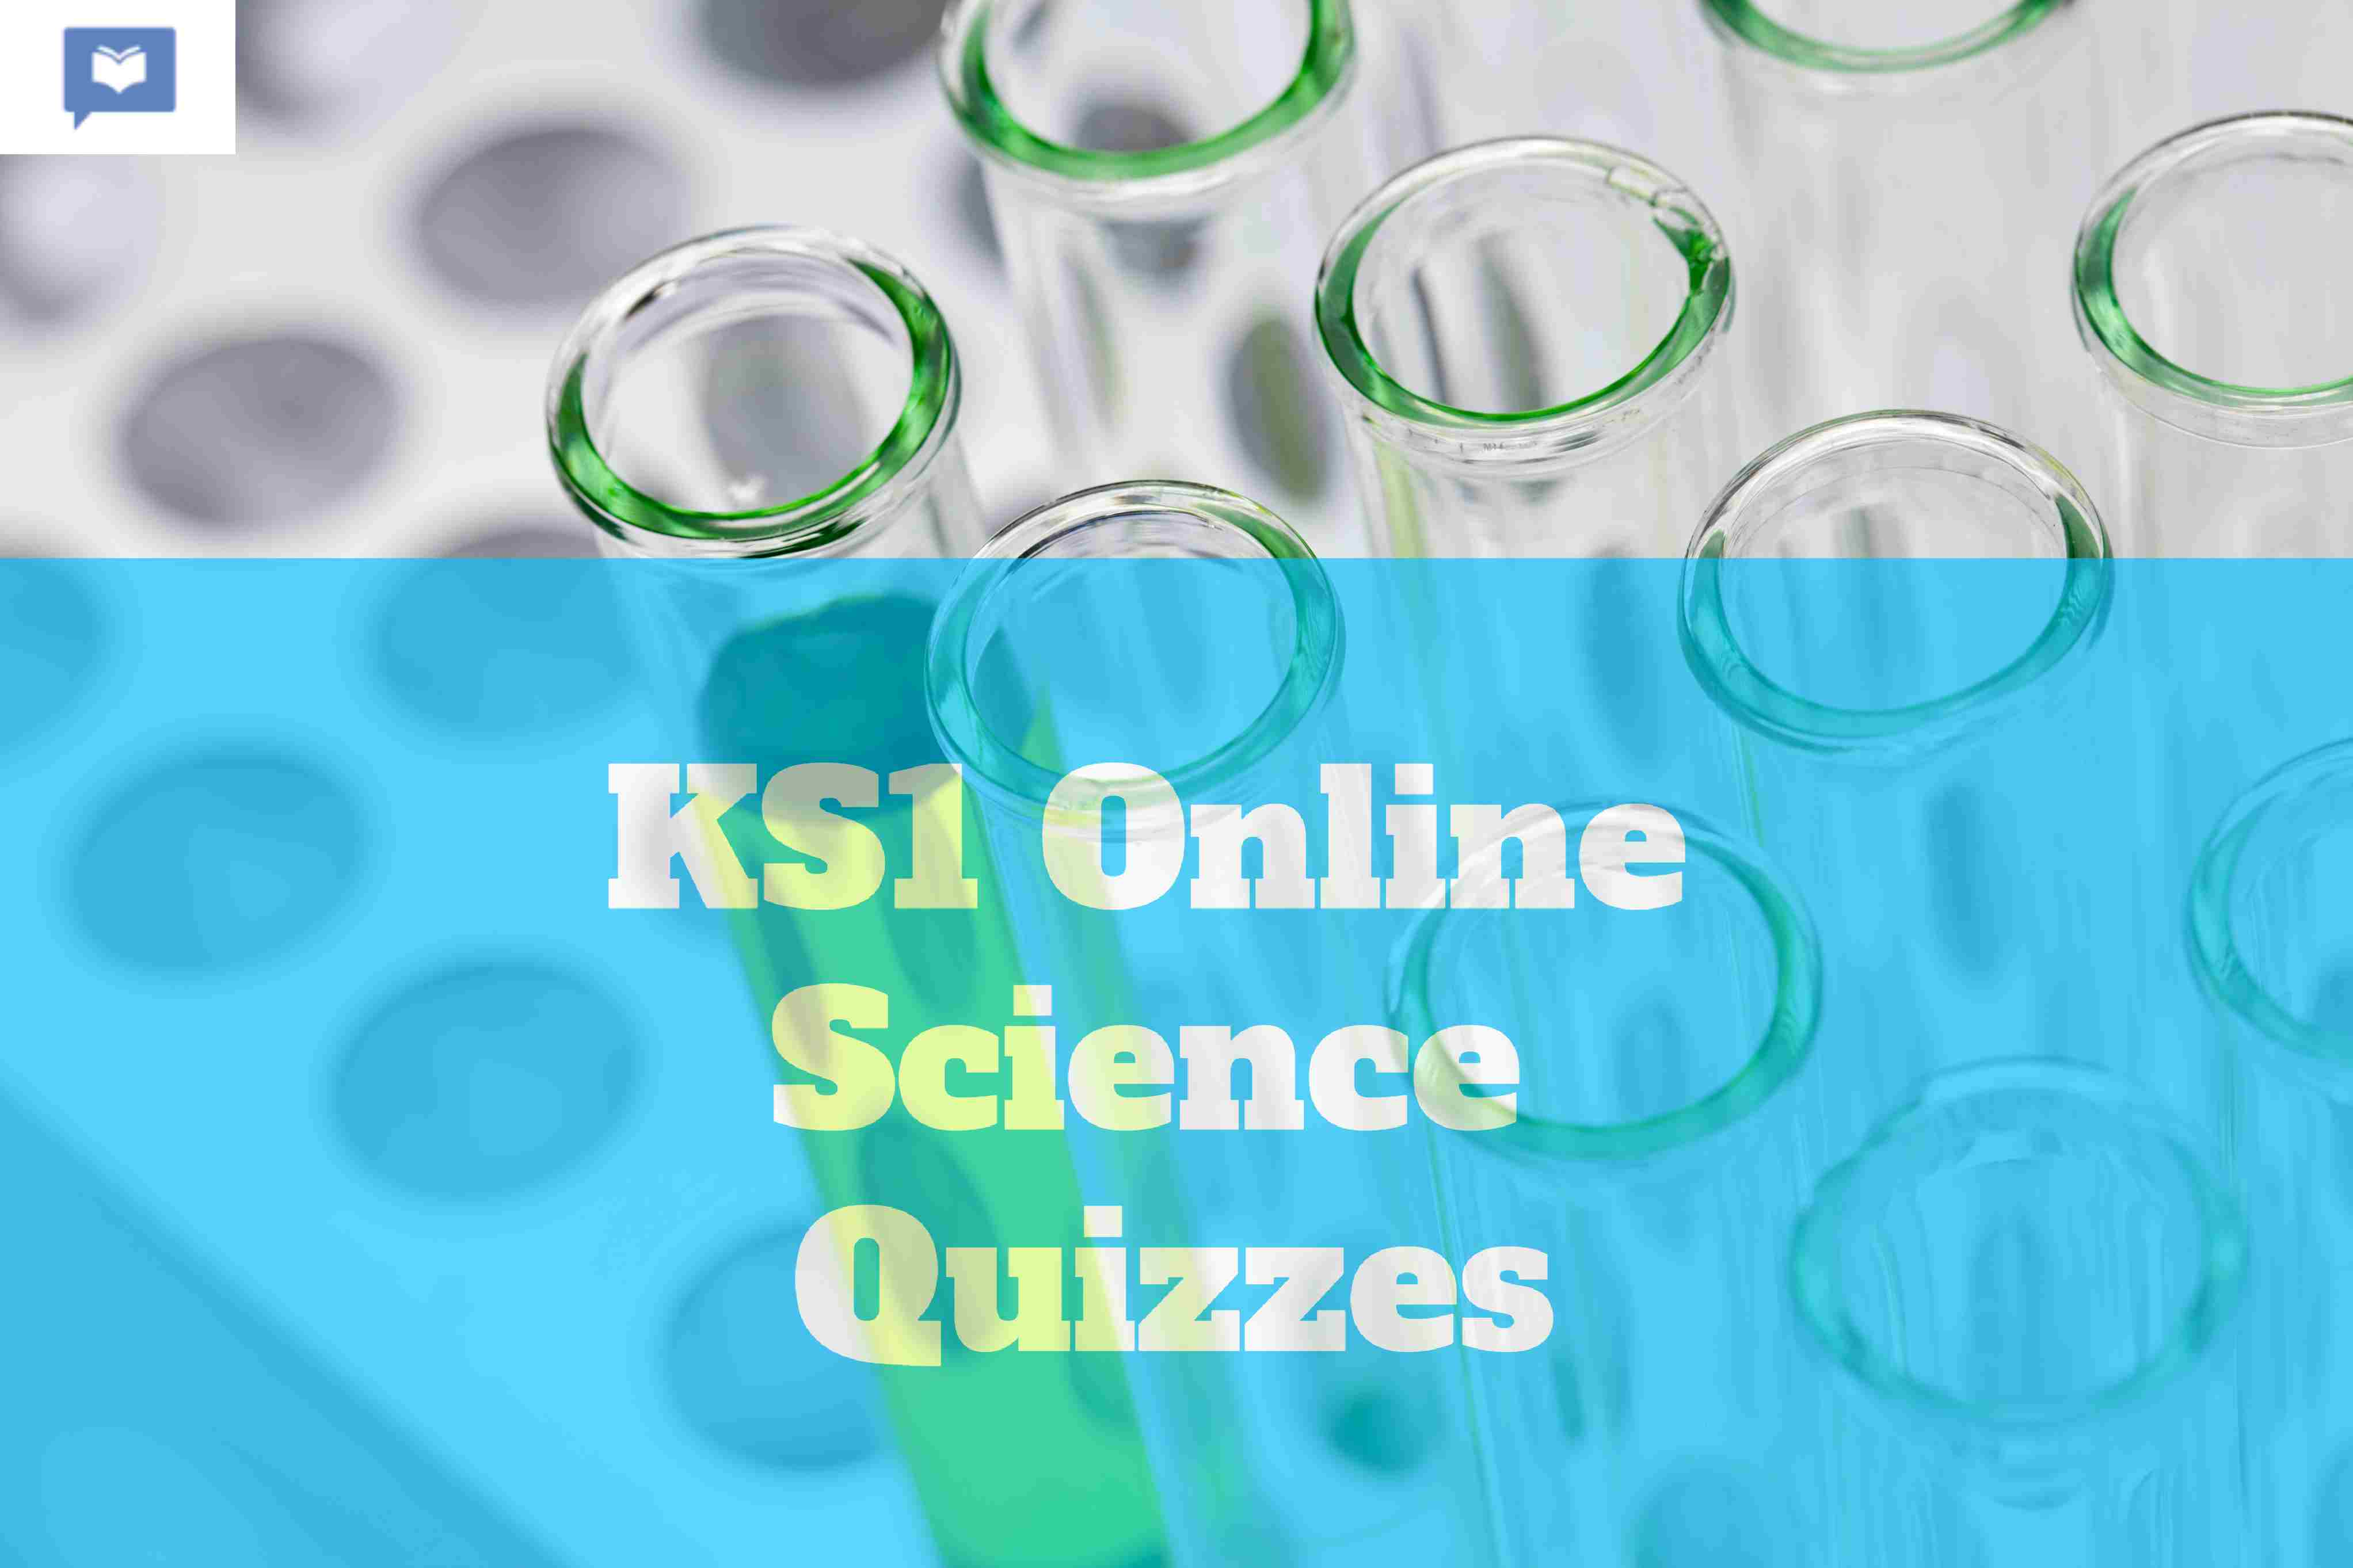 KS1 Science Quizzes